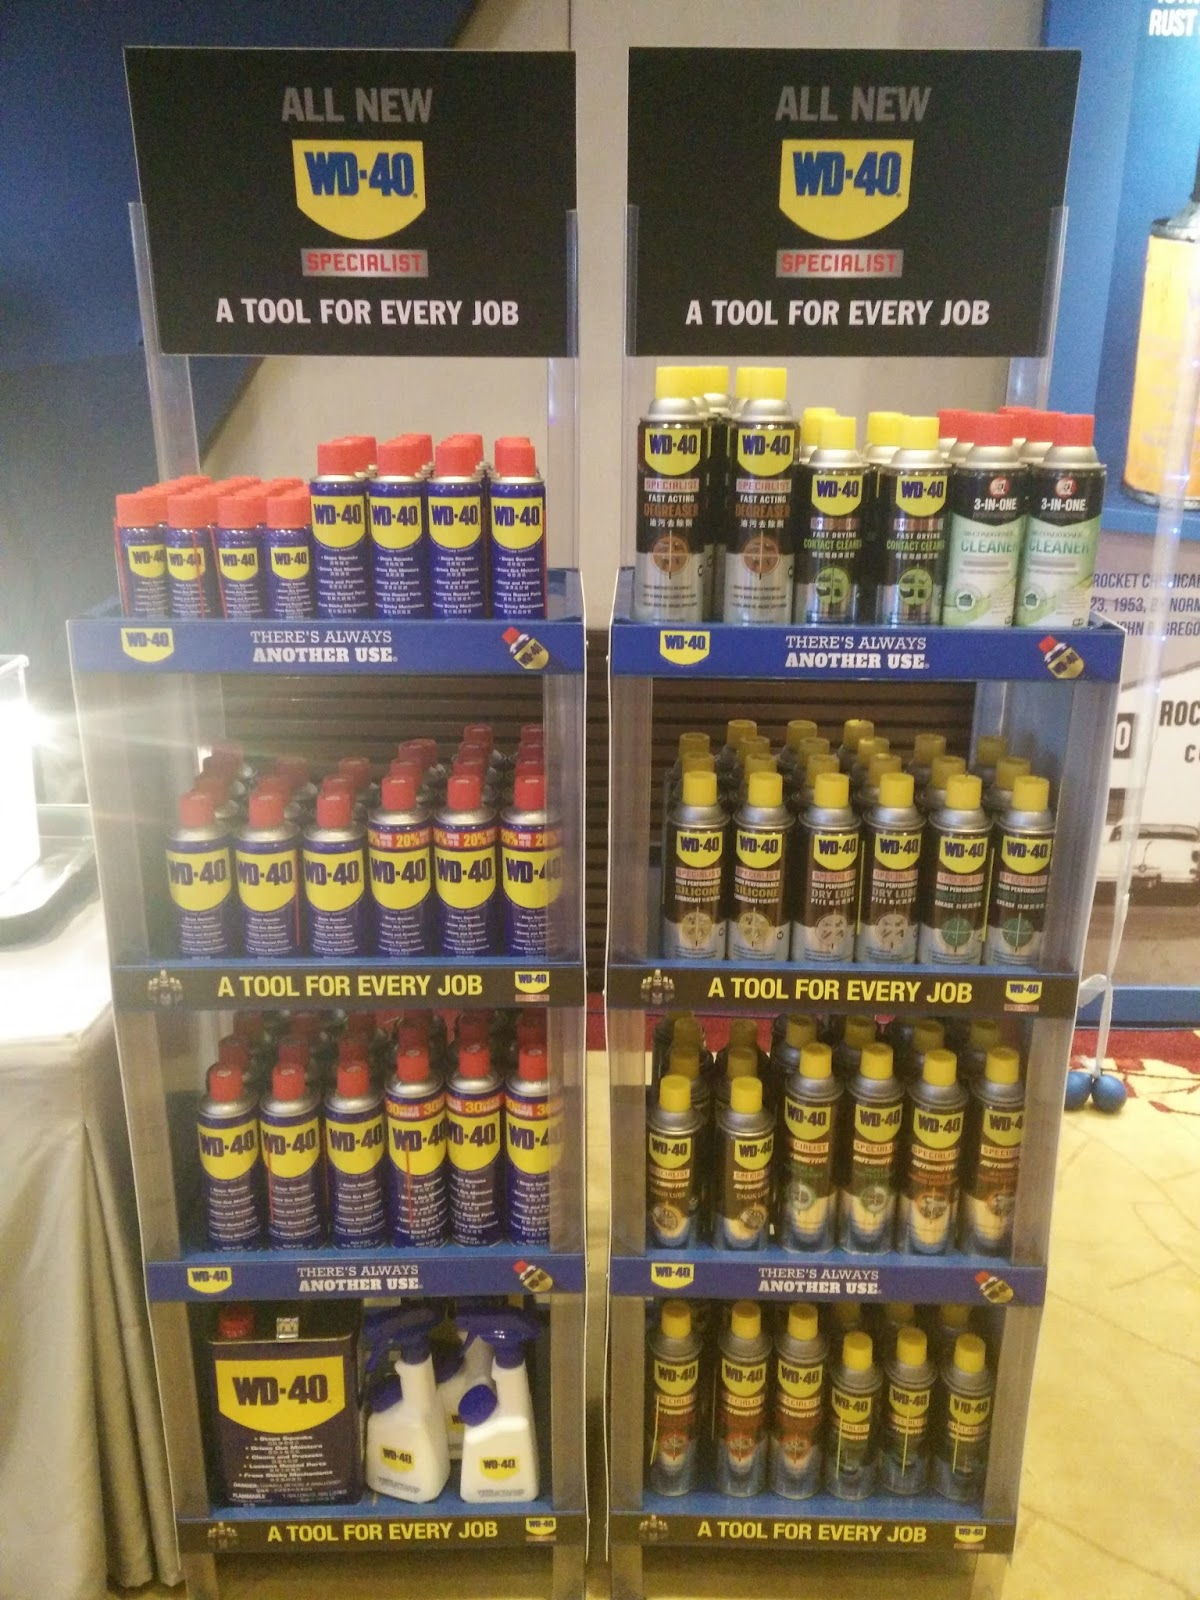 E Wen Hooi Can You Imagine The World Without Wd 40 Wd40 Belt Dressing Specialist Trusted Brand